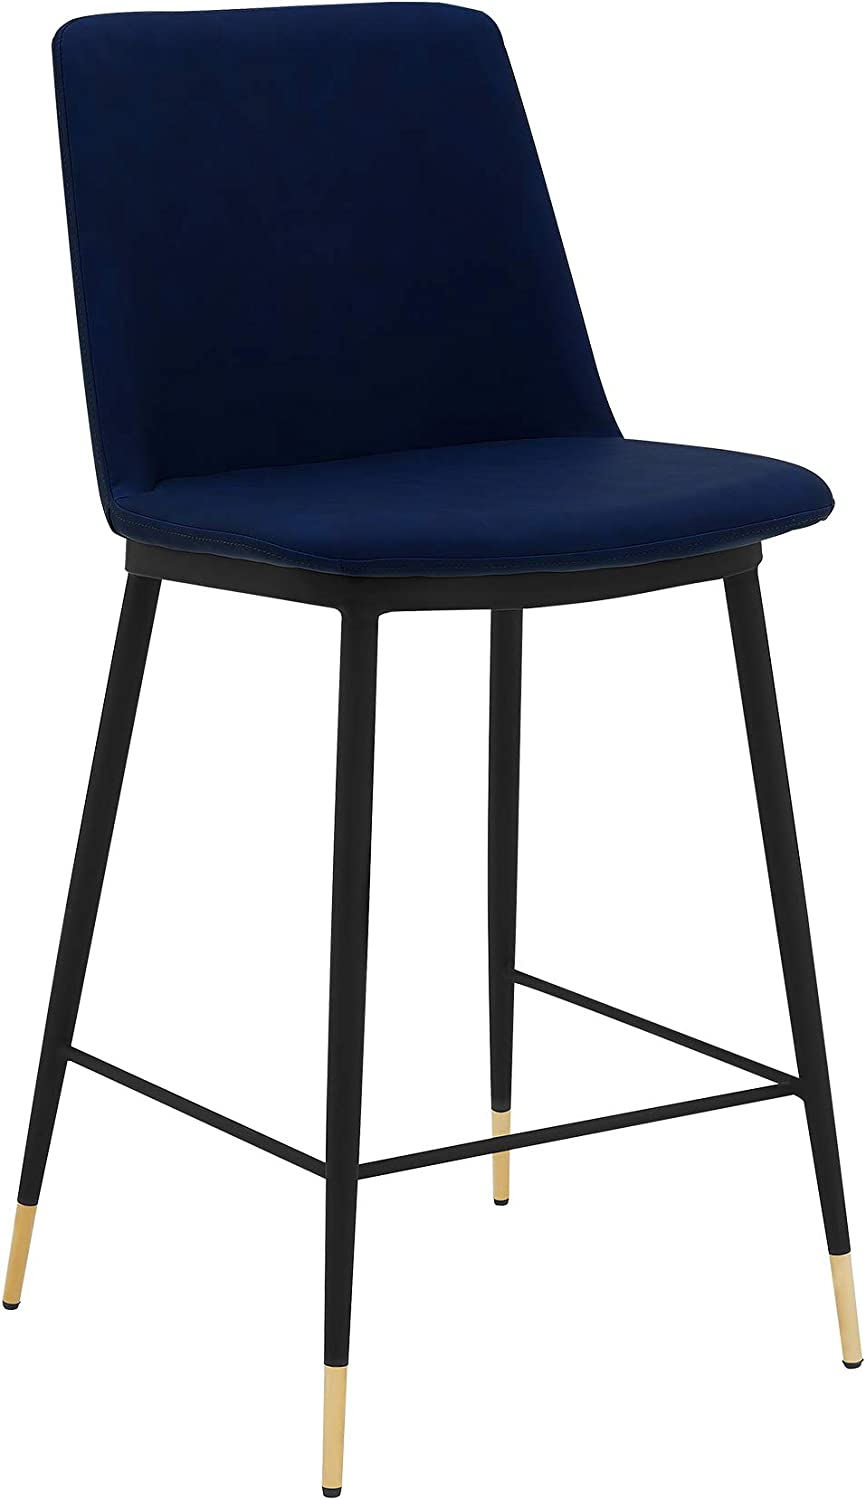 Armen Living Messina 26 Modern Faux Leather And Metal Counter Height Bar Stool Blue Furniture Decor